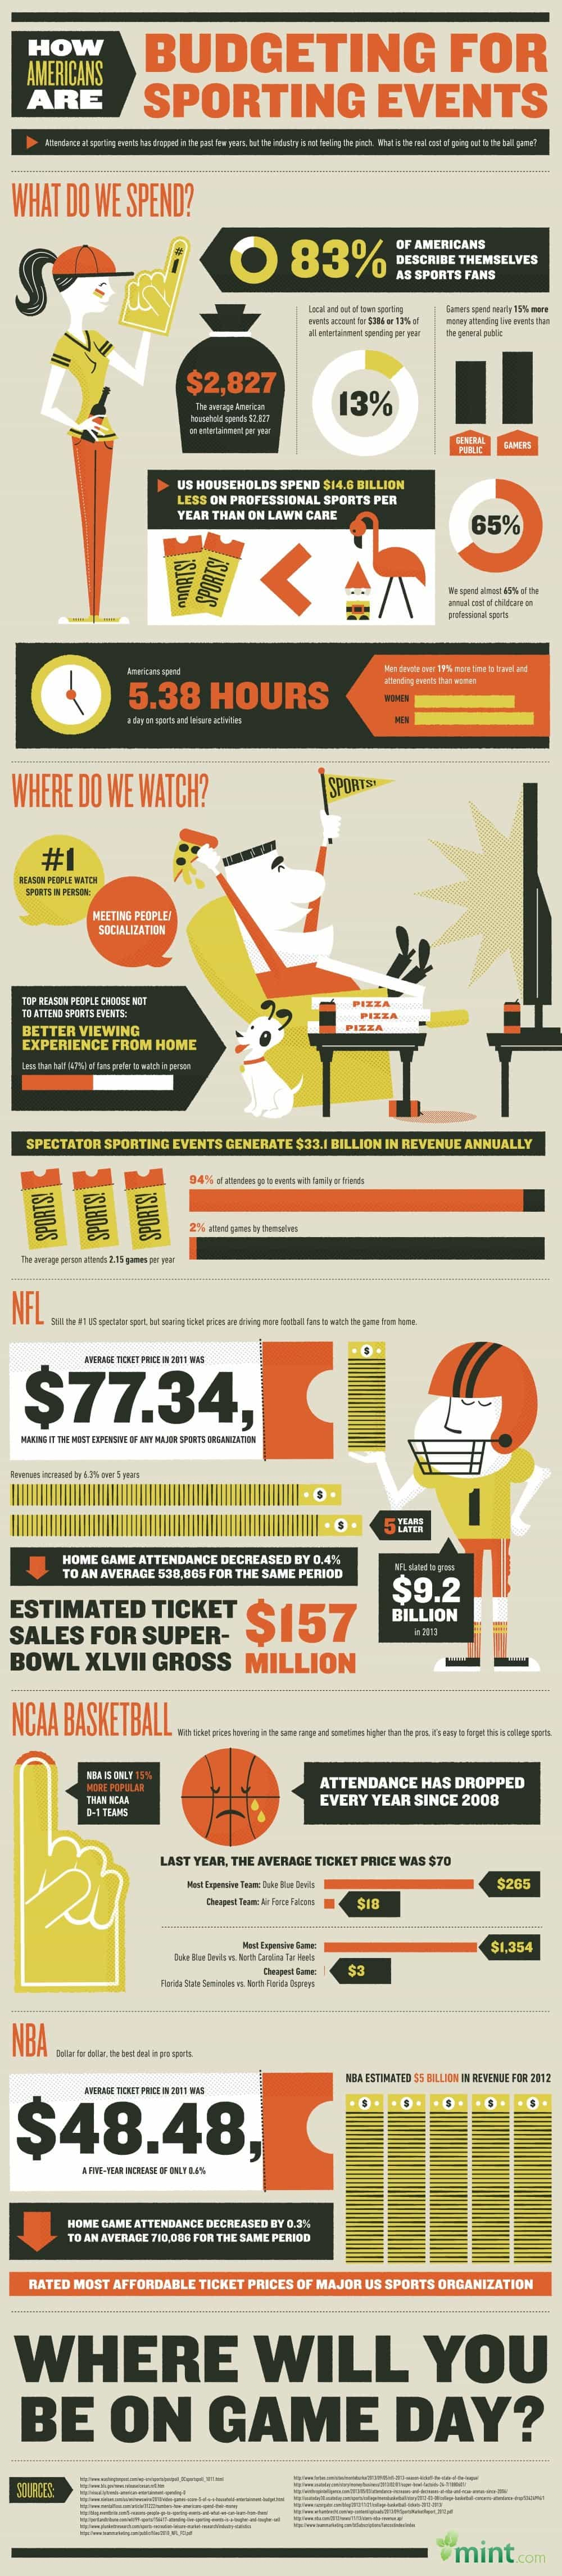 How Much Do Americans Spend On Sporting Events? :: Mint.com/blog